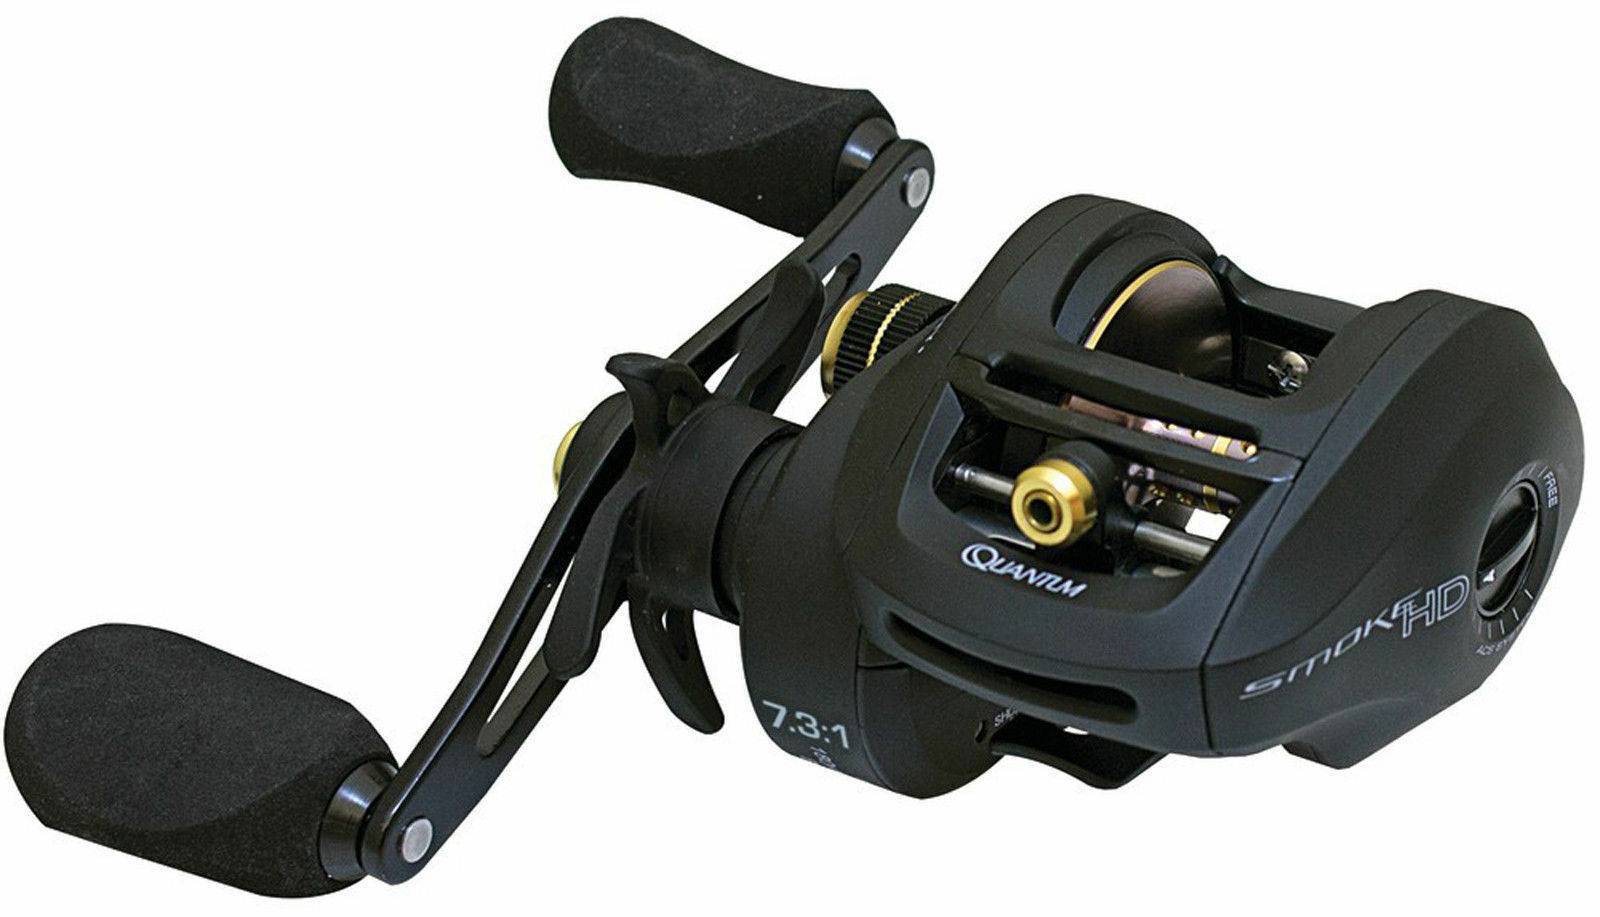 Quantum Smoke PT HD Bait Cast Reel SHD200HPT High Speed 7.3 1 Heavy Duty RH